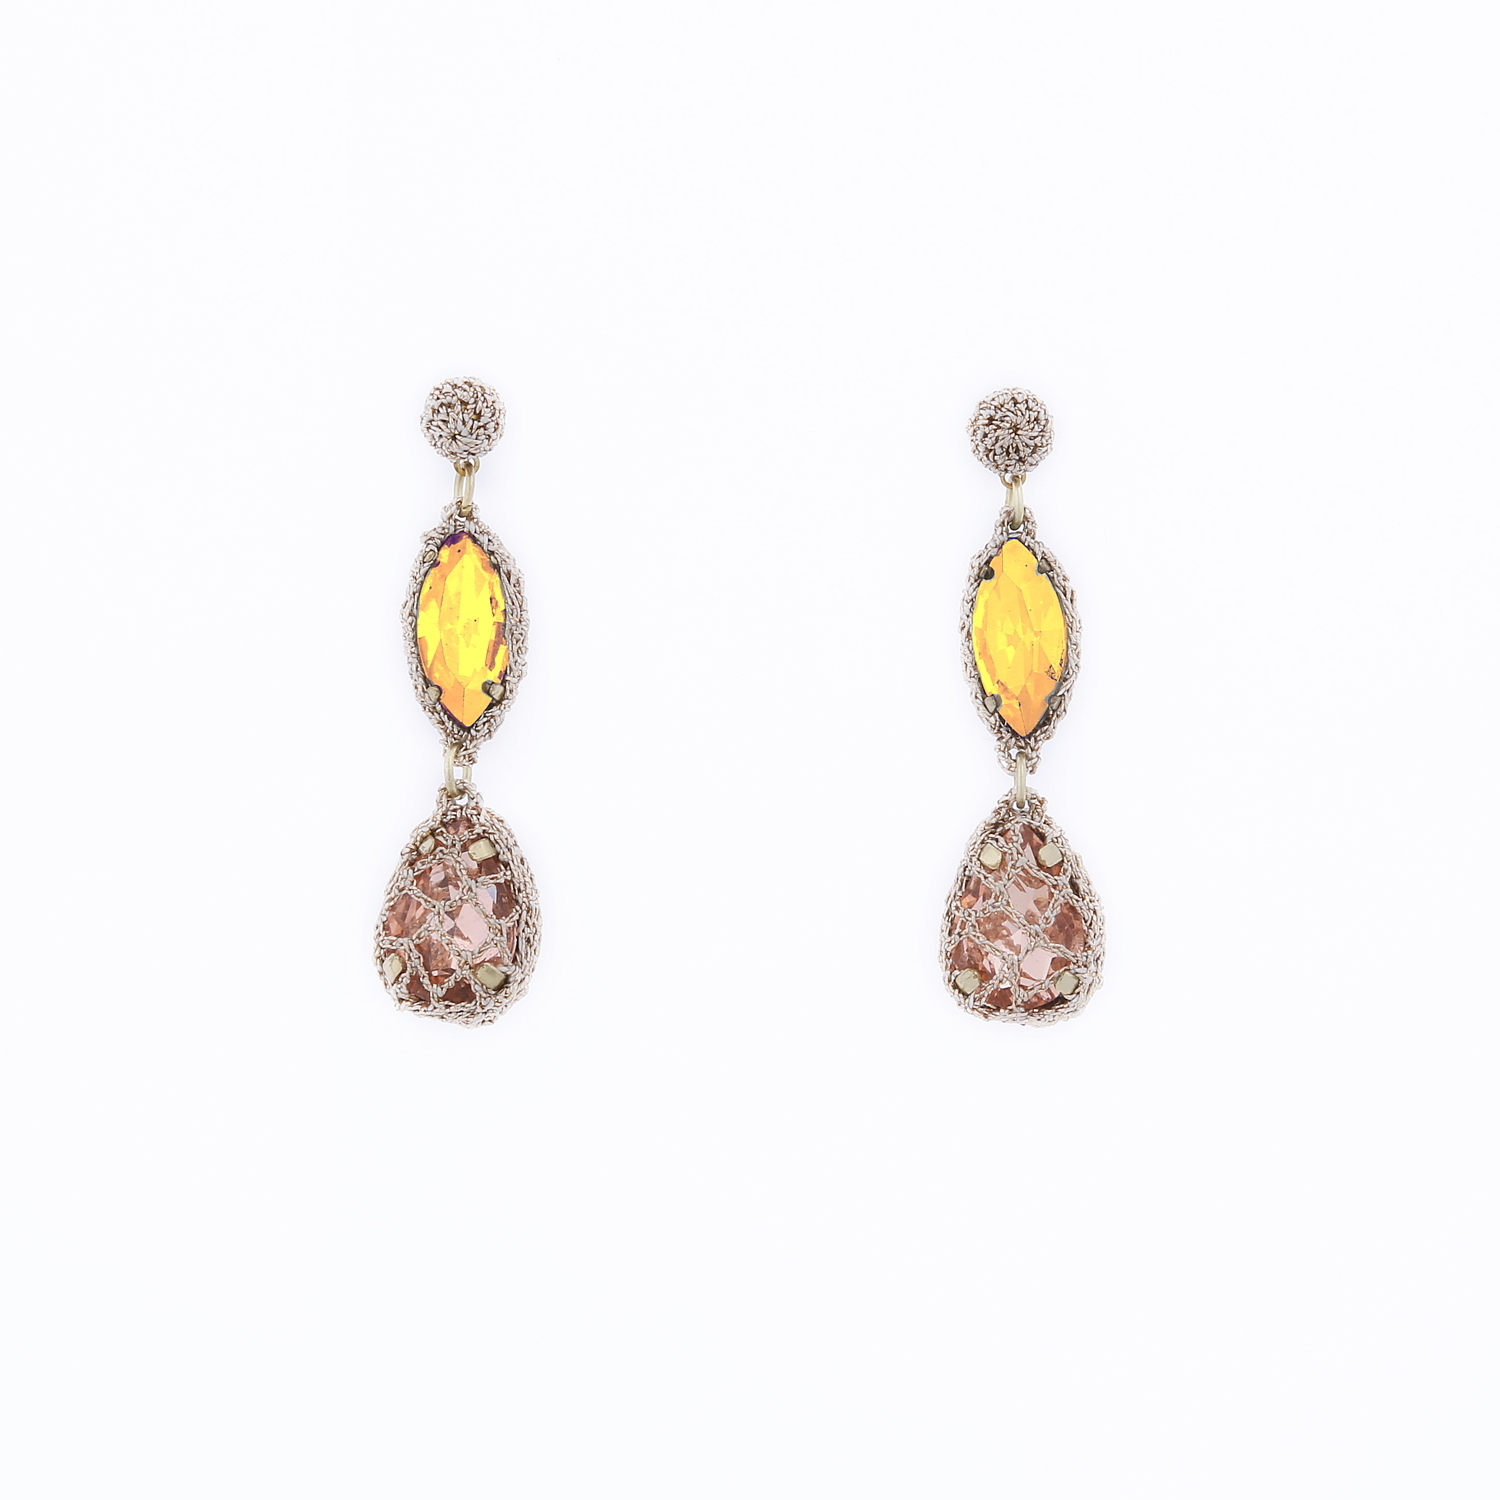 Venus Honey Drop Earrings in Amber-Blush